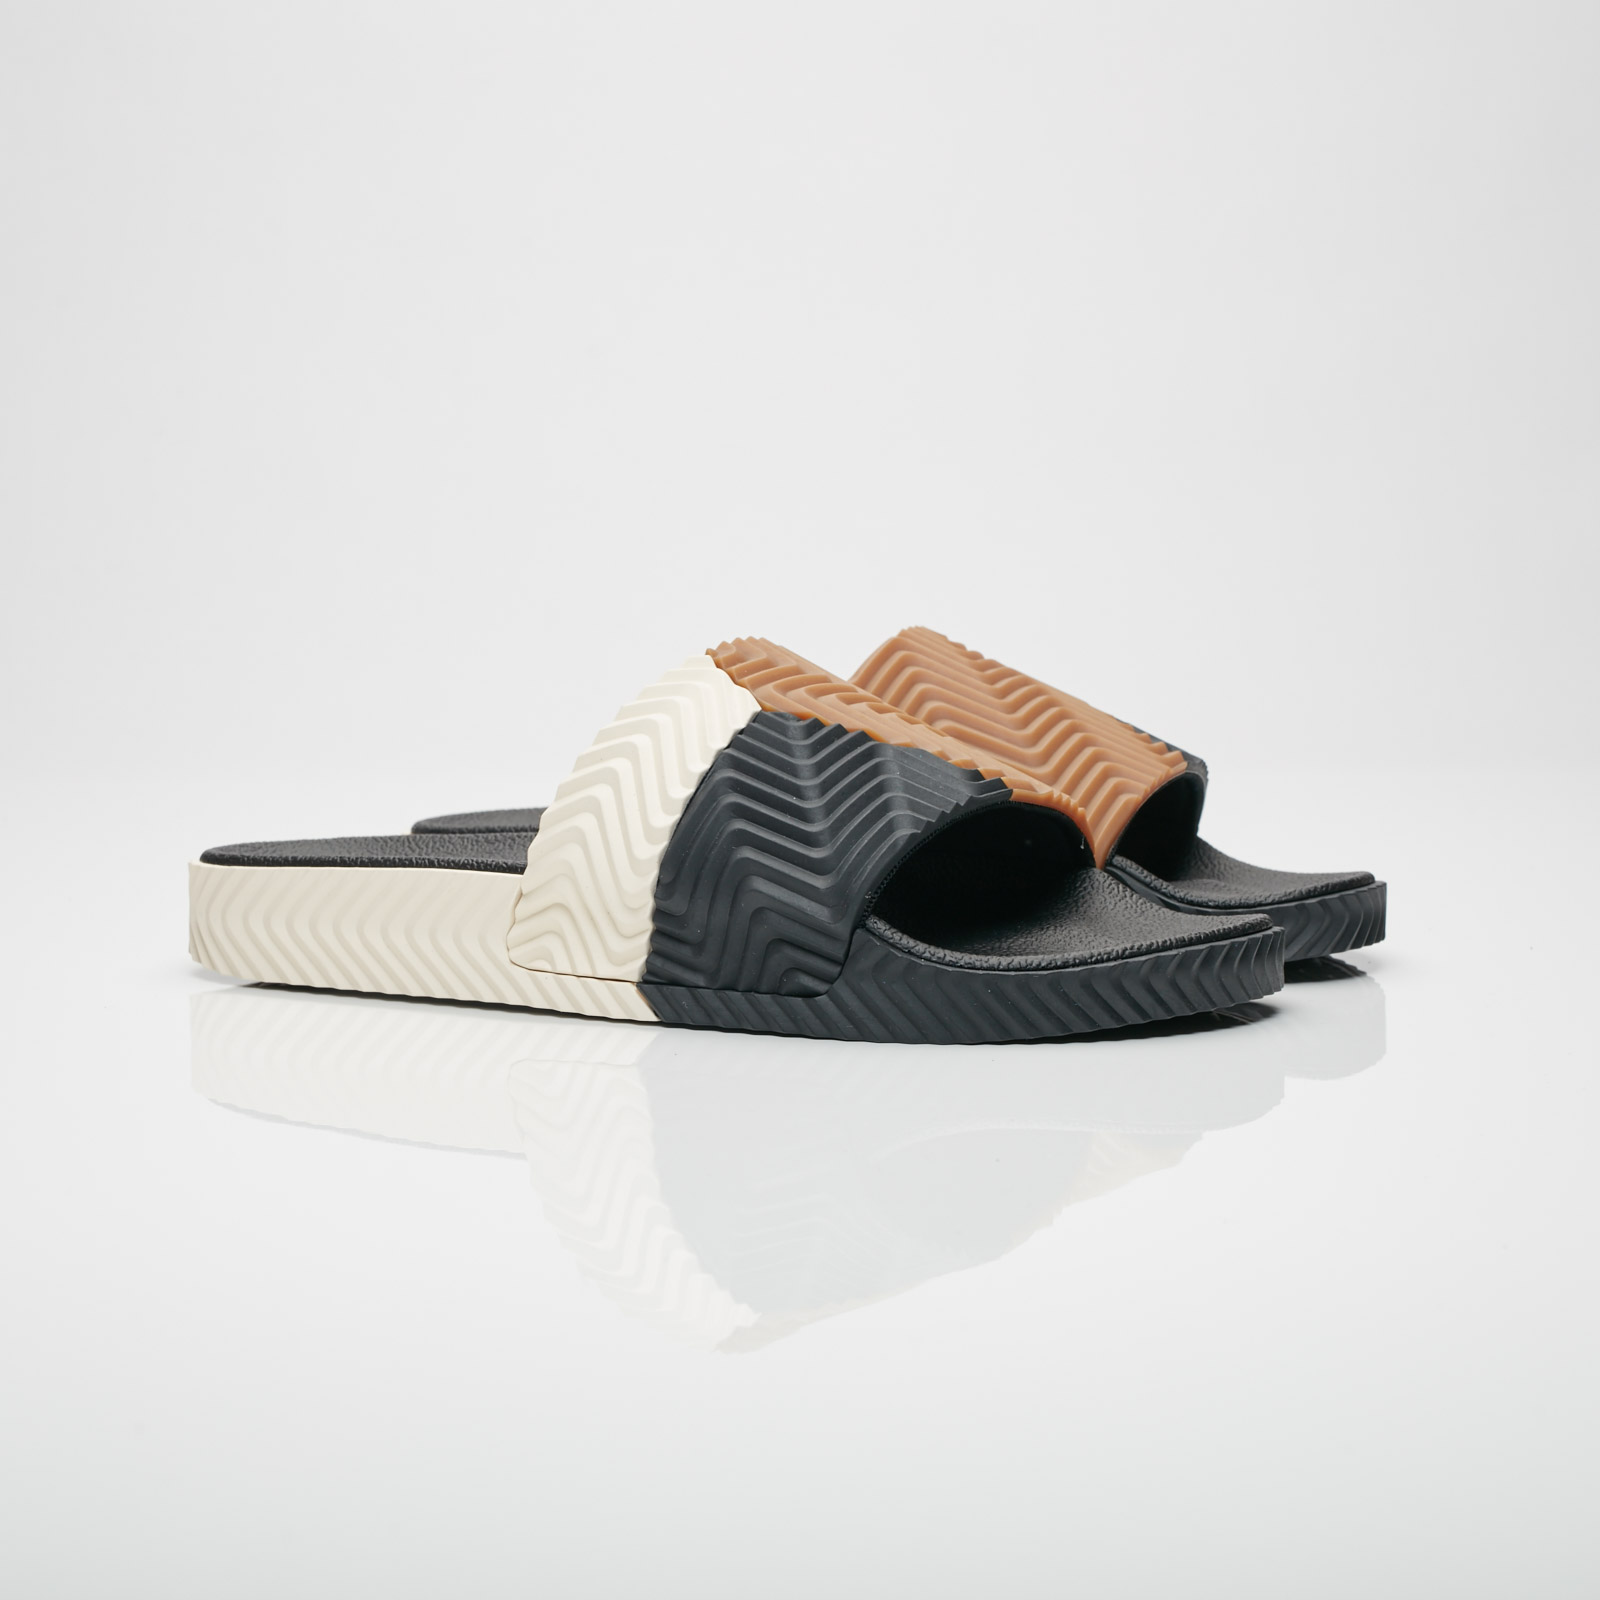 e6a87b786444 adidas Originals by Alexander Wang Adilette Slides